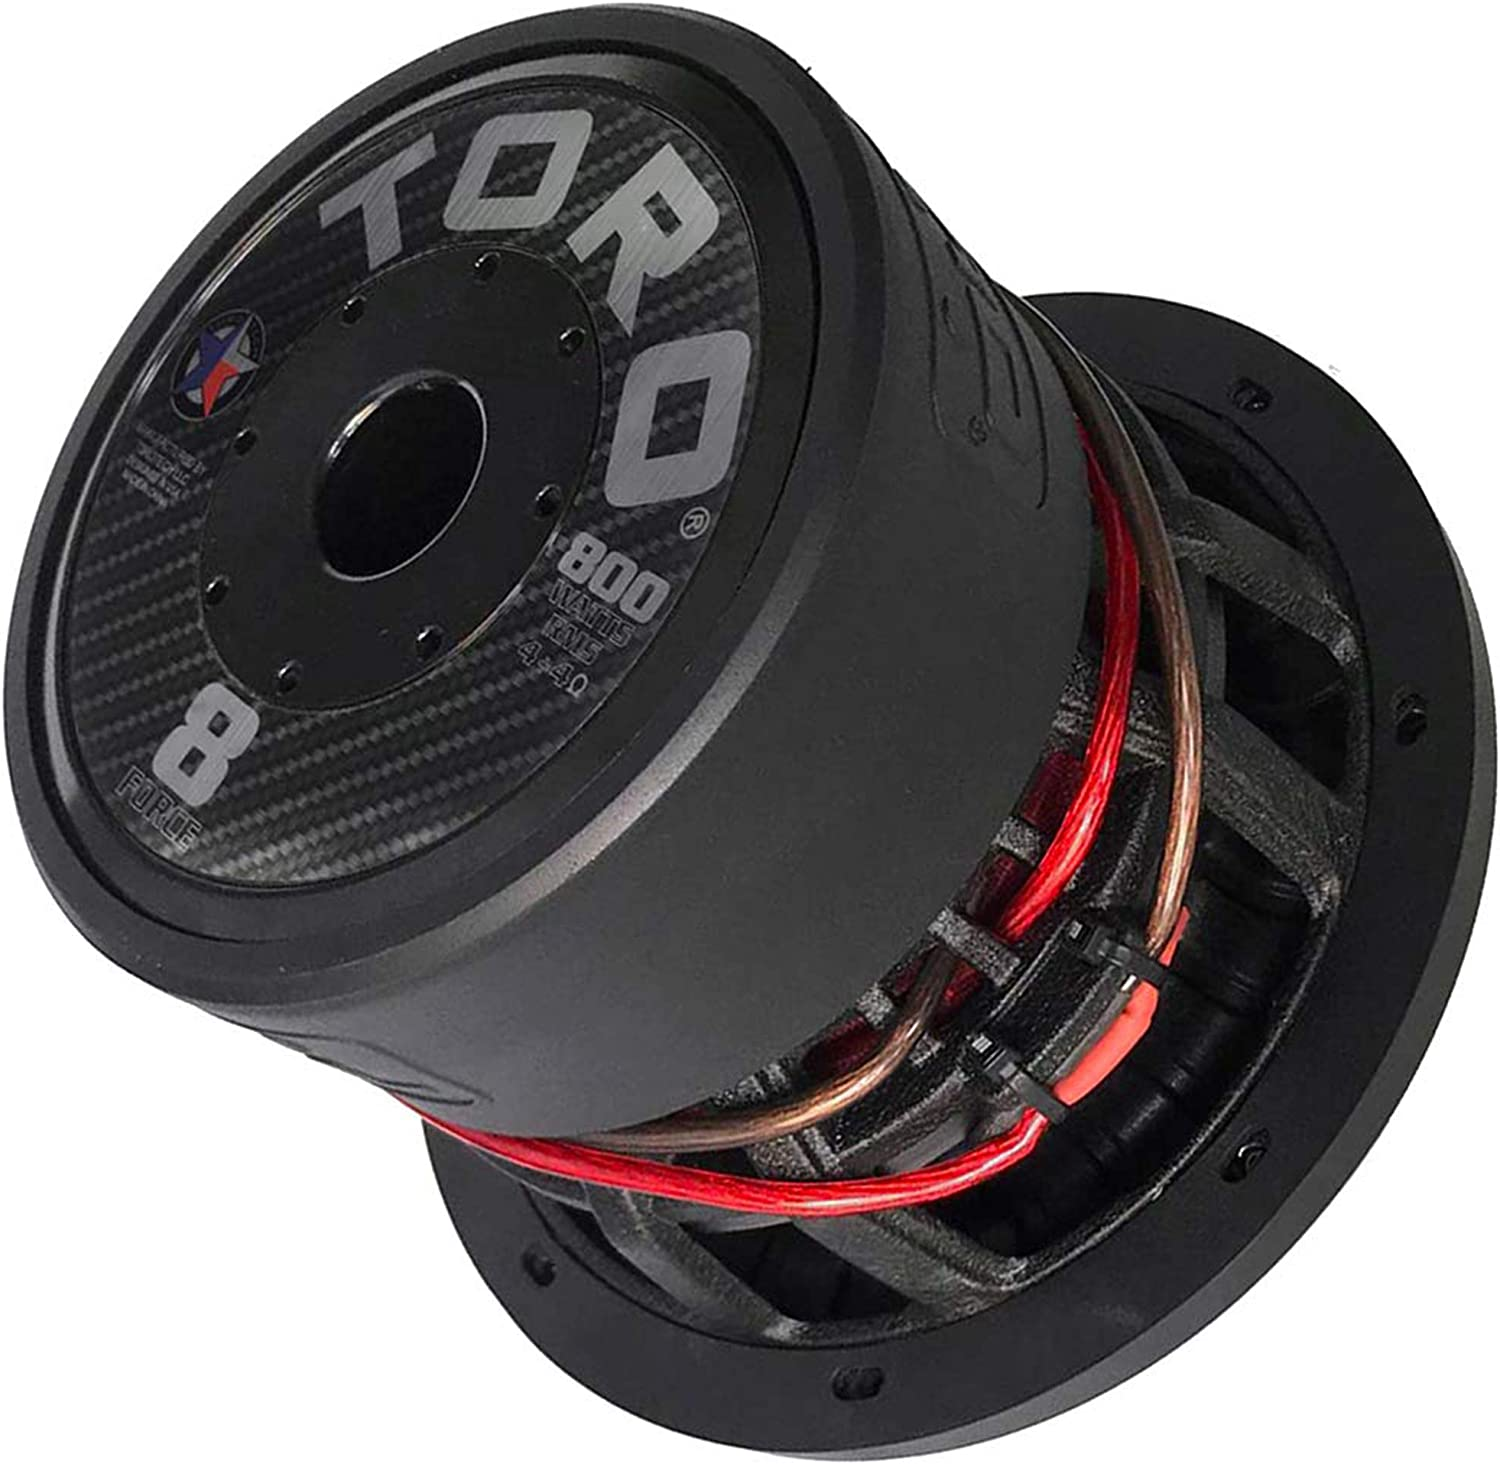 """Buy TORO TECH – Force 8, 8 Inch 800 Watts RMS – 1600 Watts MAX – Dual 4 Ohm  2.5 Inch Voice Coil, 8"""" Car Audio Subwoofer for Cars, Trucks, Jeeps, Boats,"""